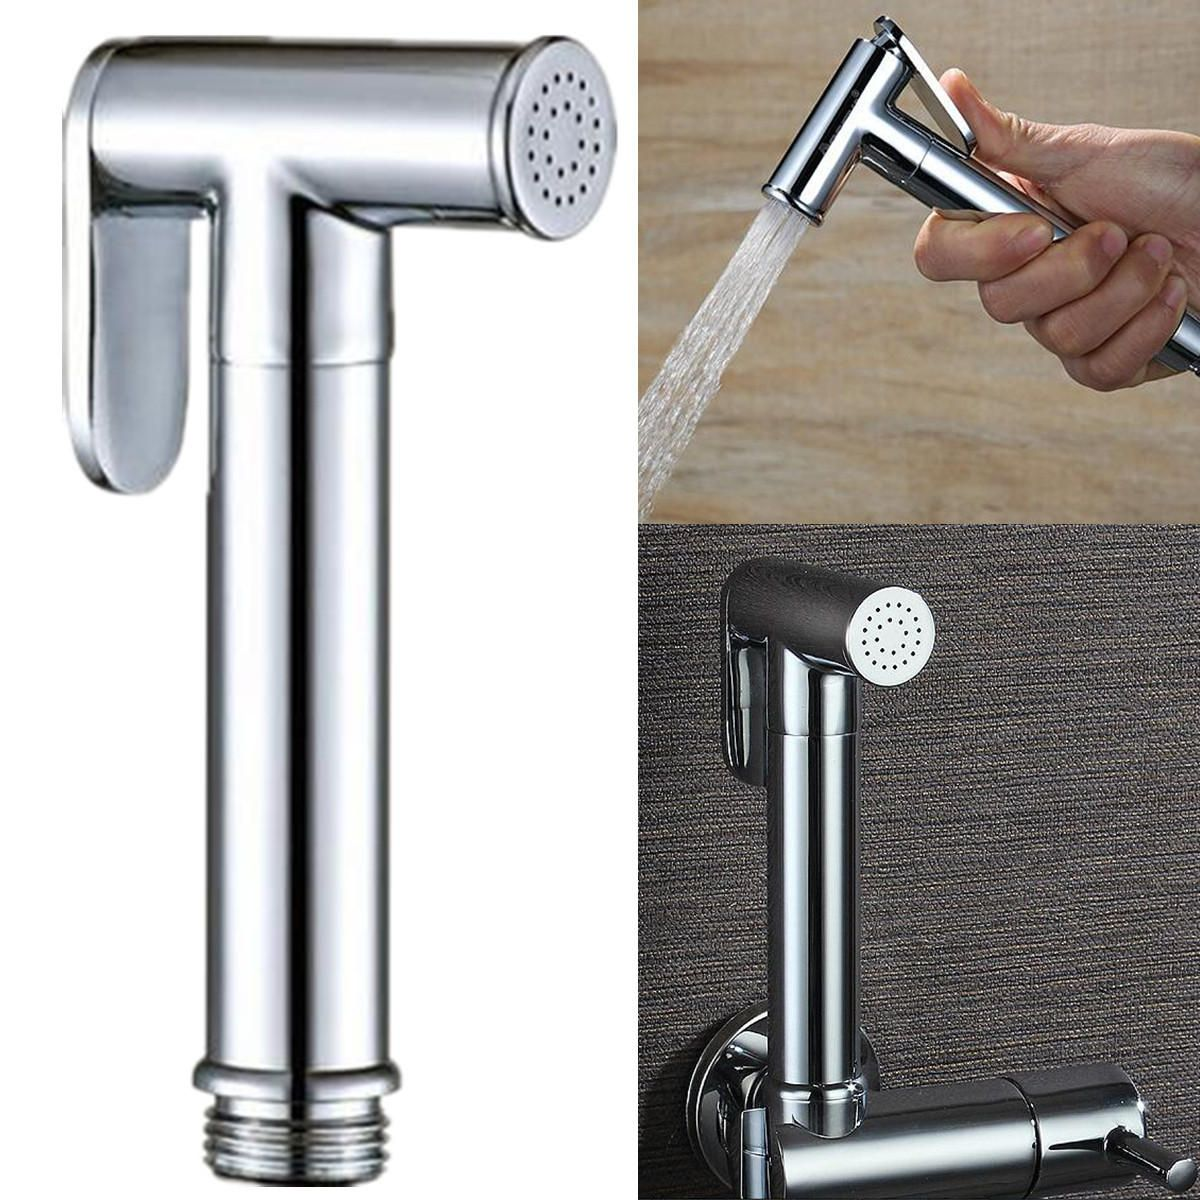 Portable Toilet Handheld Metal Plated Bidet Sprayer Douche kit Without Hose